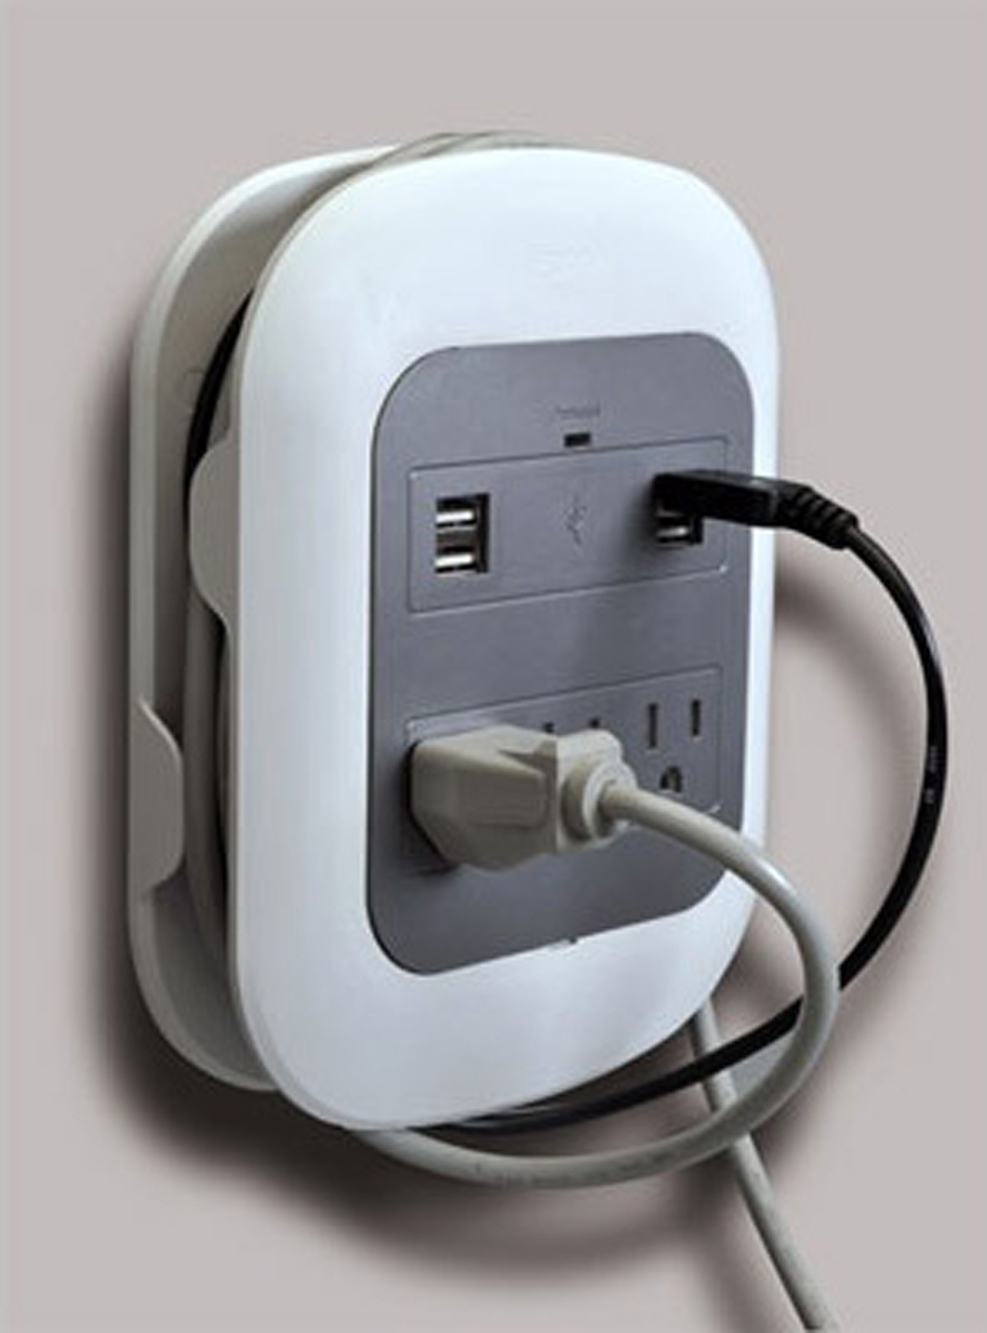 Legrand Offers Easy To Install Outlet And Usb Chargers